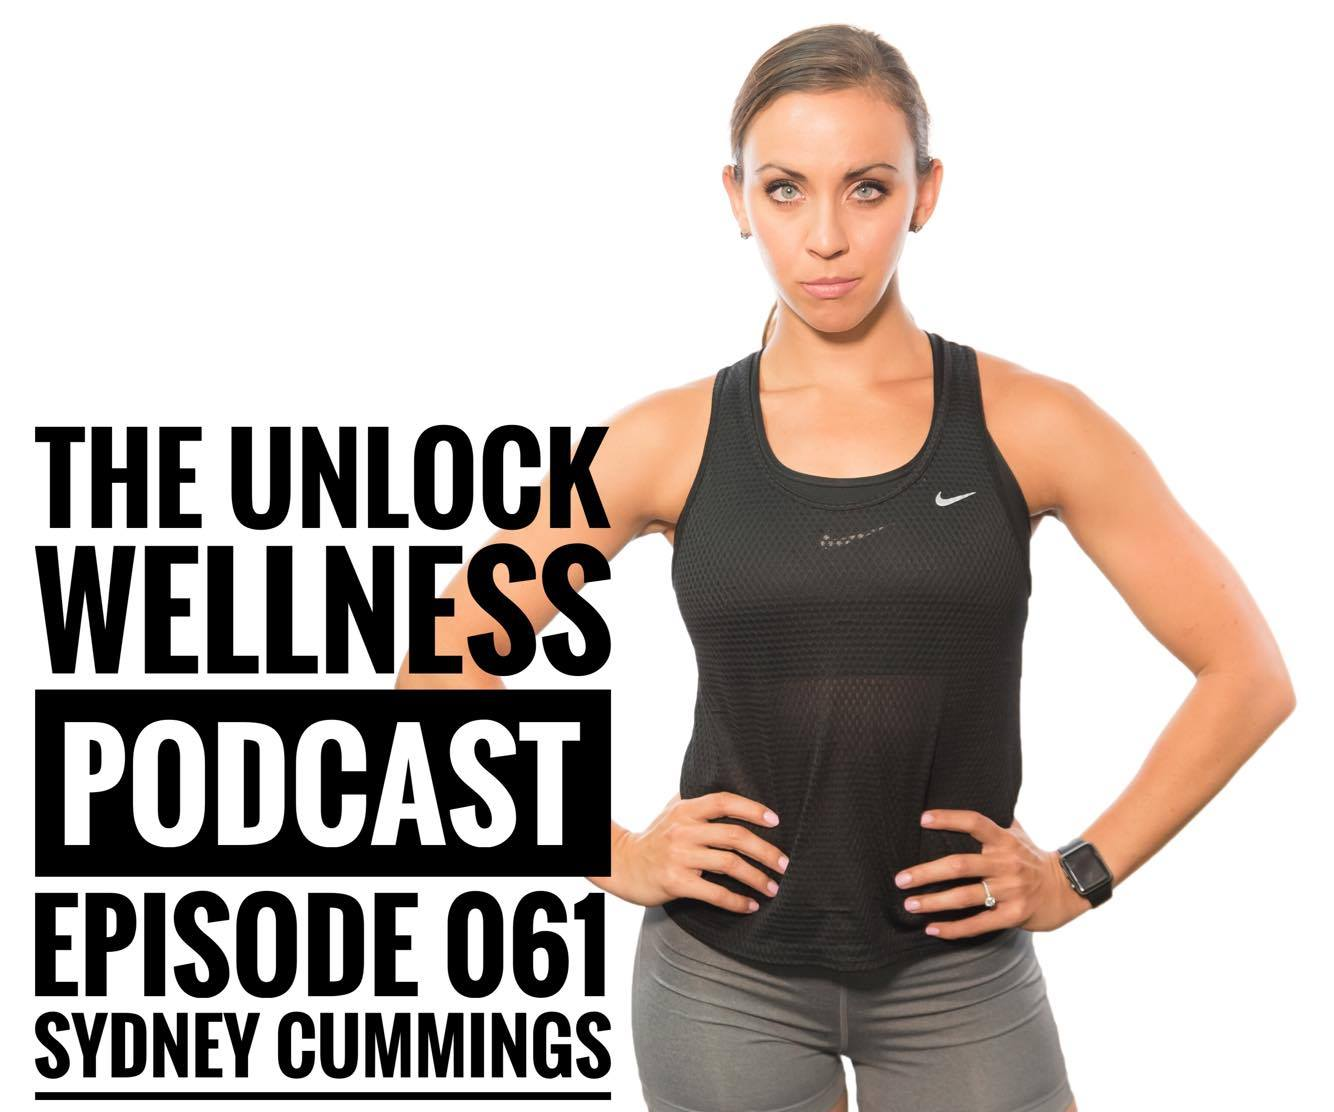 unlock wellness podcast episode